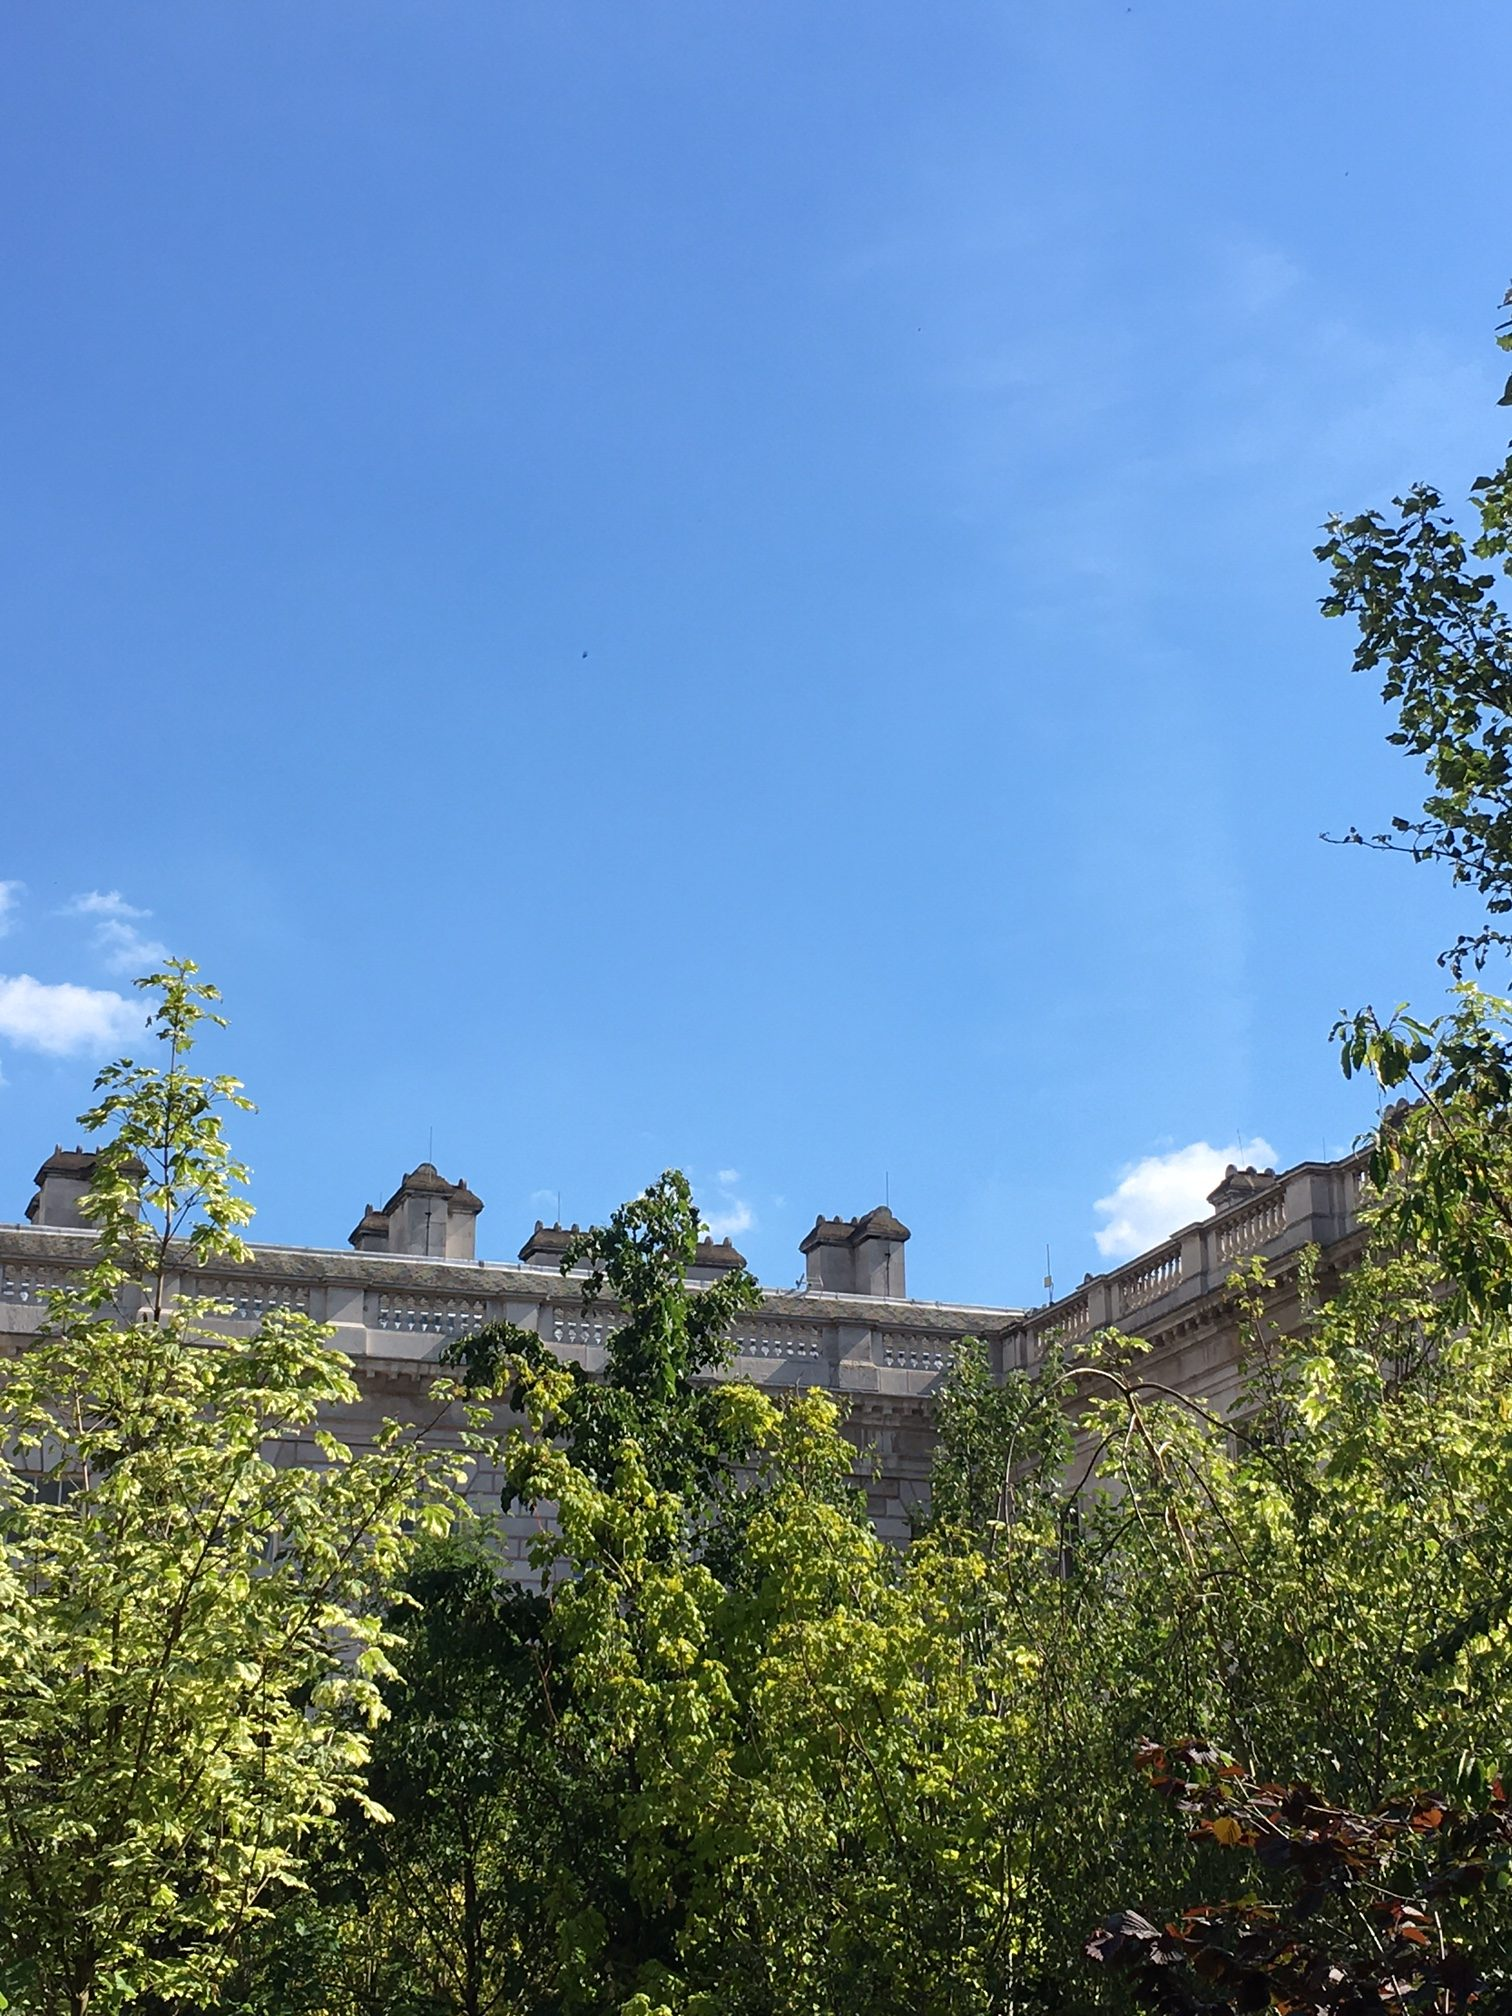 Somerset House and the Forest of Change